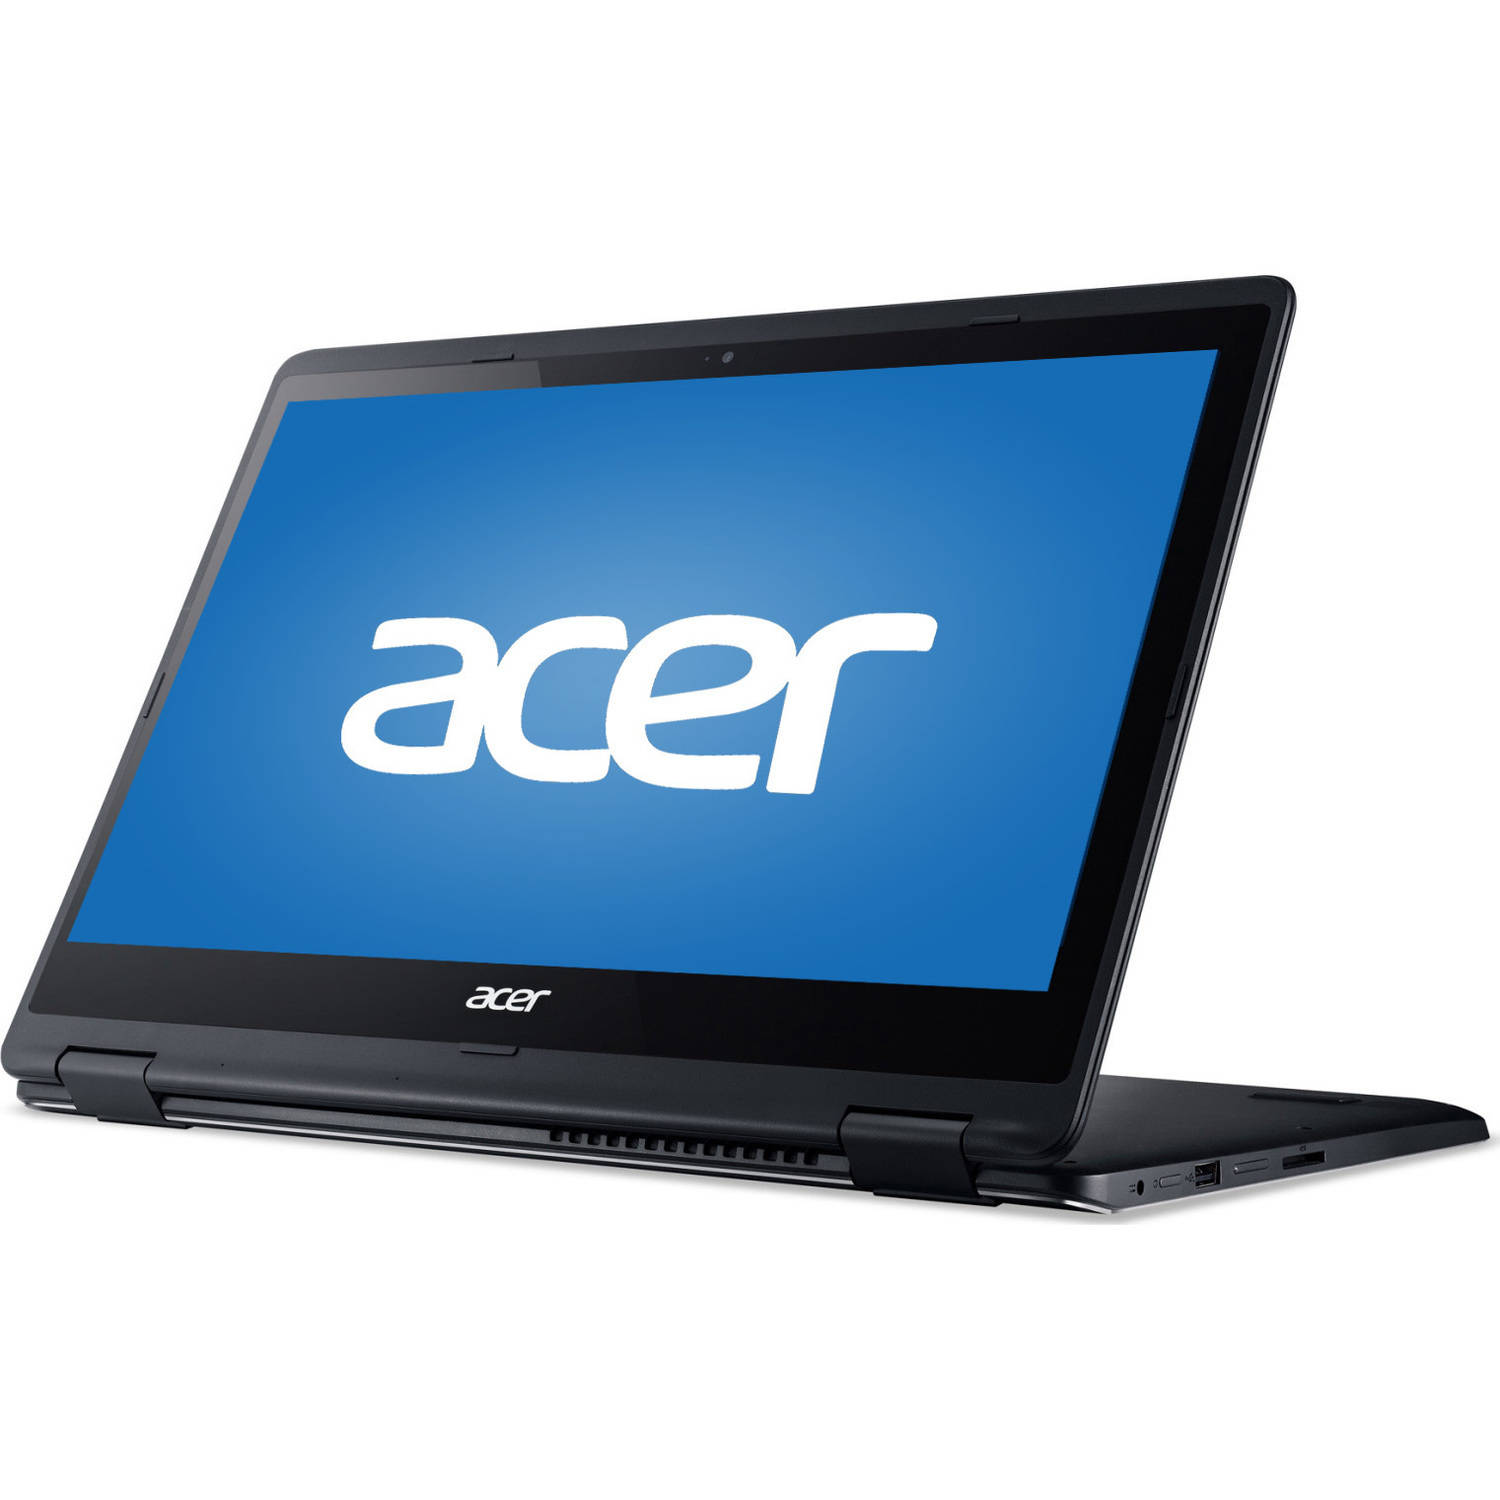 "Manufacturer Refurbished Acer Aspire R5-471T-71LX 14"" Laptop, Touchscreen, 2-in-1, Windows 10 Home, Intel Core i7-6500U Processor, 8GB RAM, 256GB Solid State Drive"